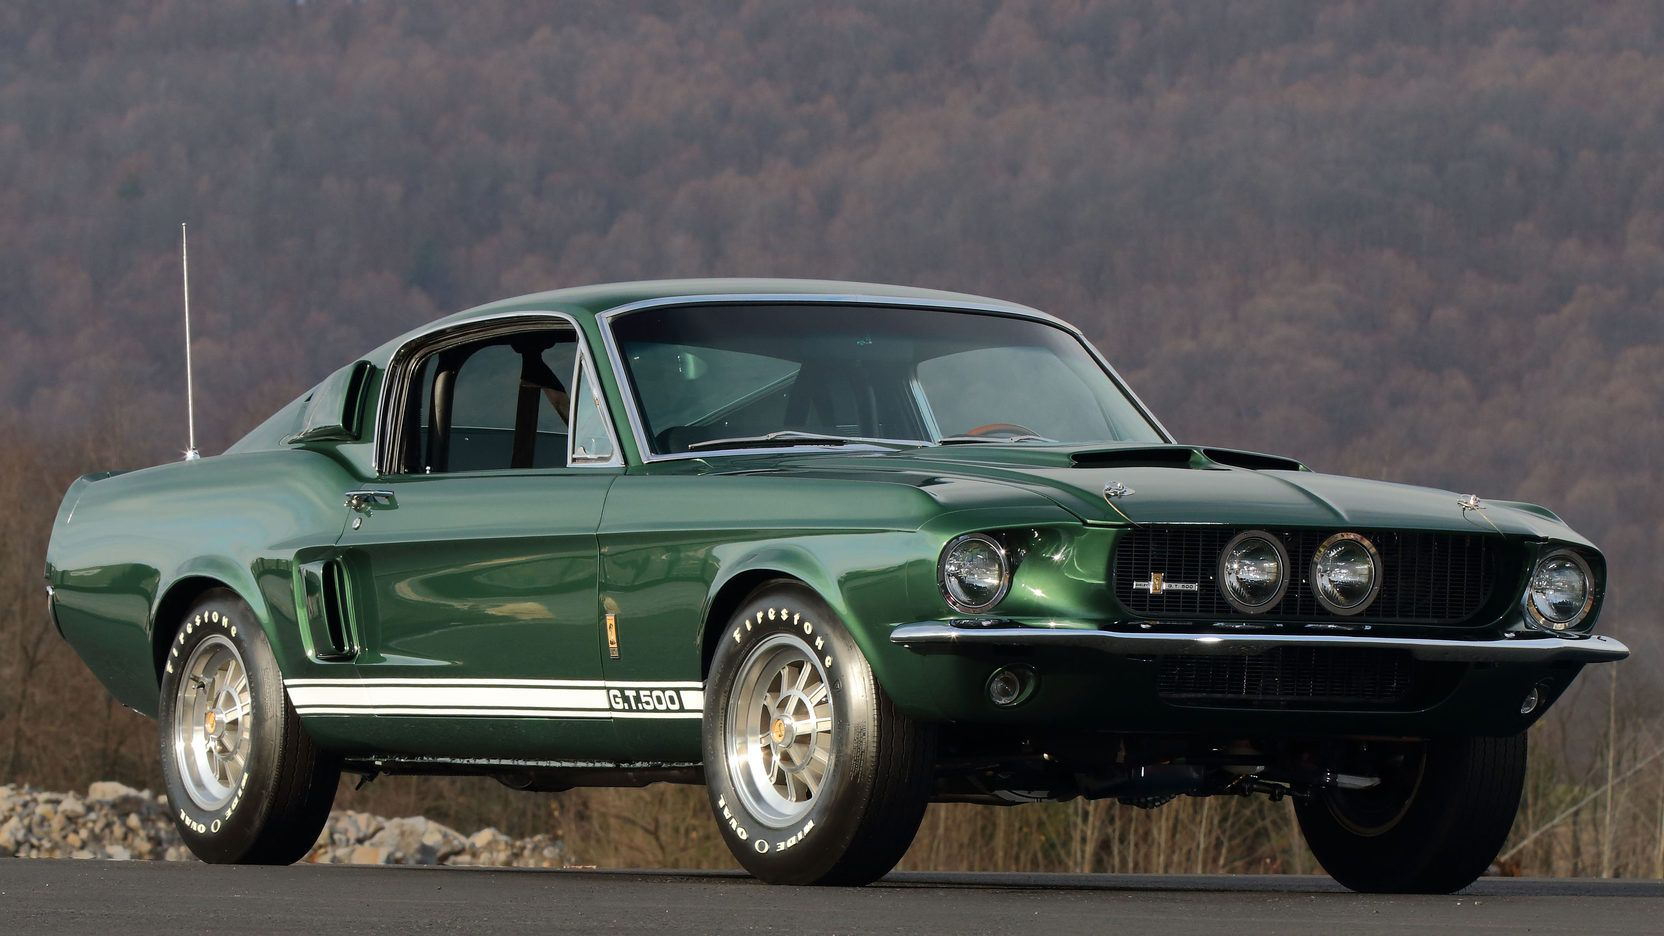 1967 Shelby Gt500 Fastback Shelby No 1997 428 355 Hp Lot S91 Houston 2016 Mecum Auctions Shelby Gt500 1967 Shelby Gt500 Shelby